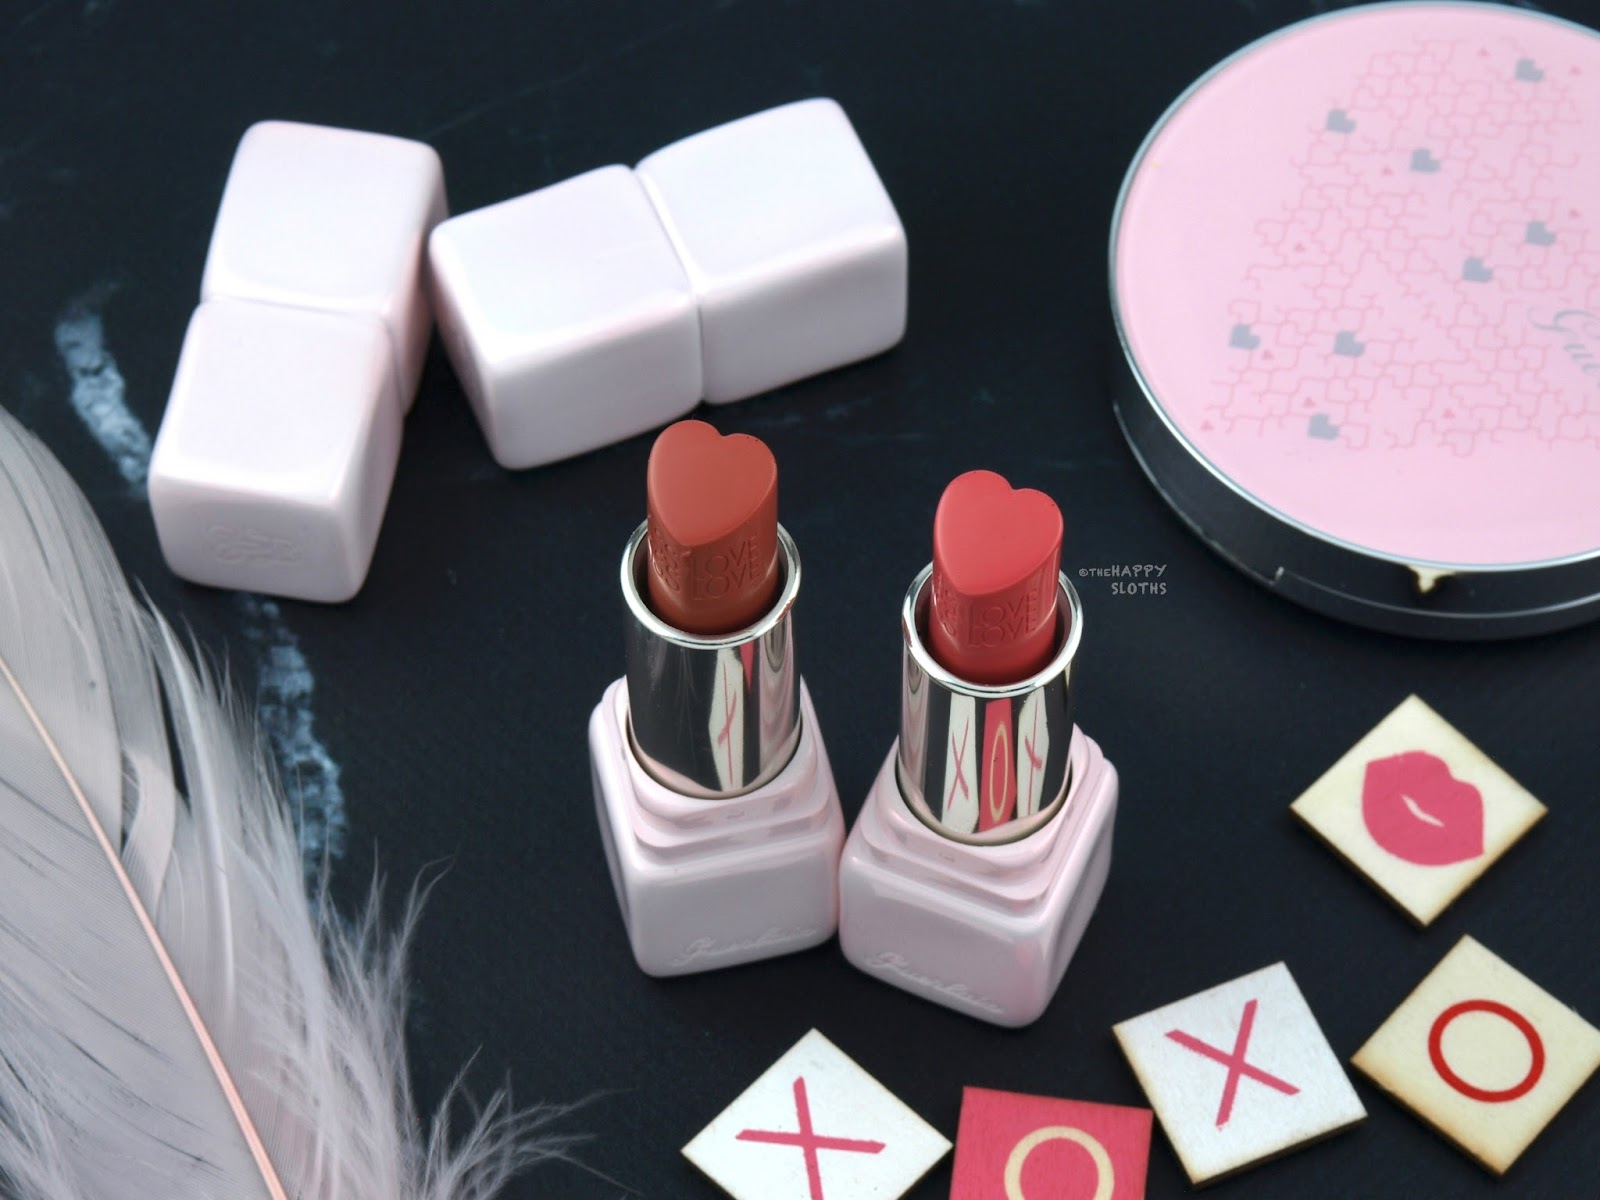 Guerlain Spring 2018 Collection | KissKiss LoveLove Heart-Shaped Lipstick: Review and Swatches